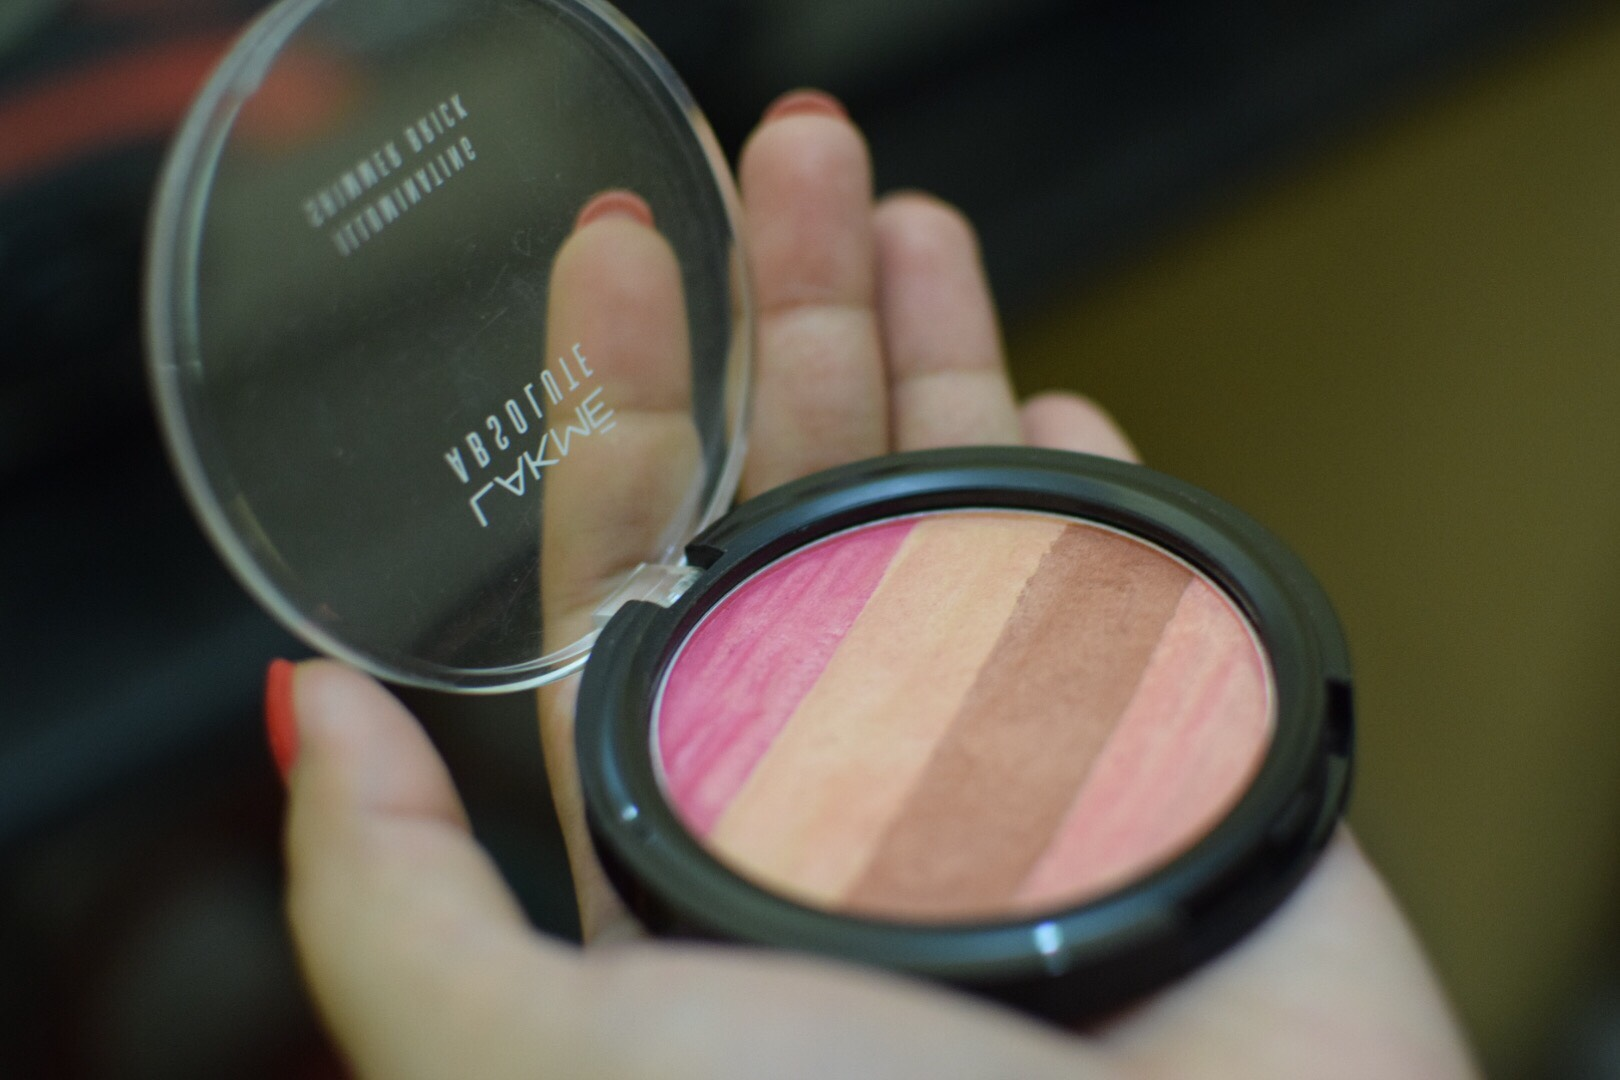 Lakme Absolute Illuminating Blush Shimmer Brick